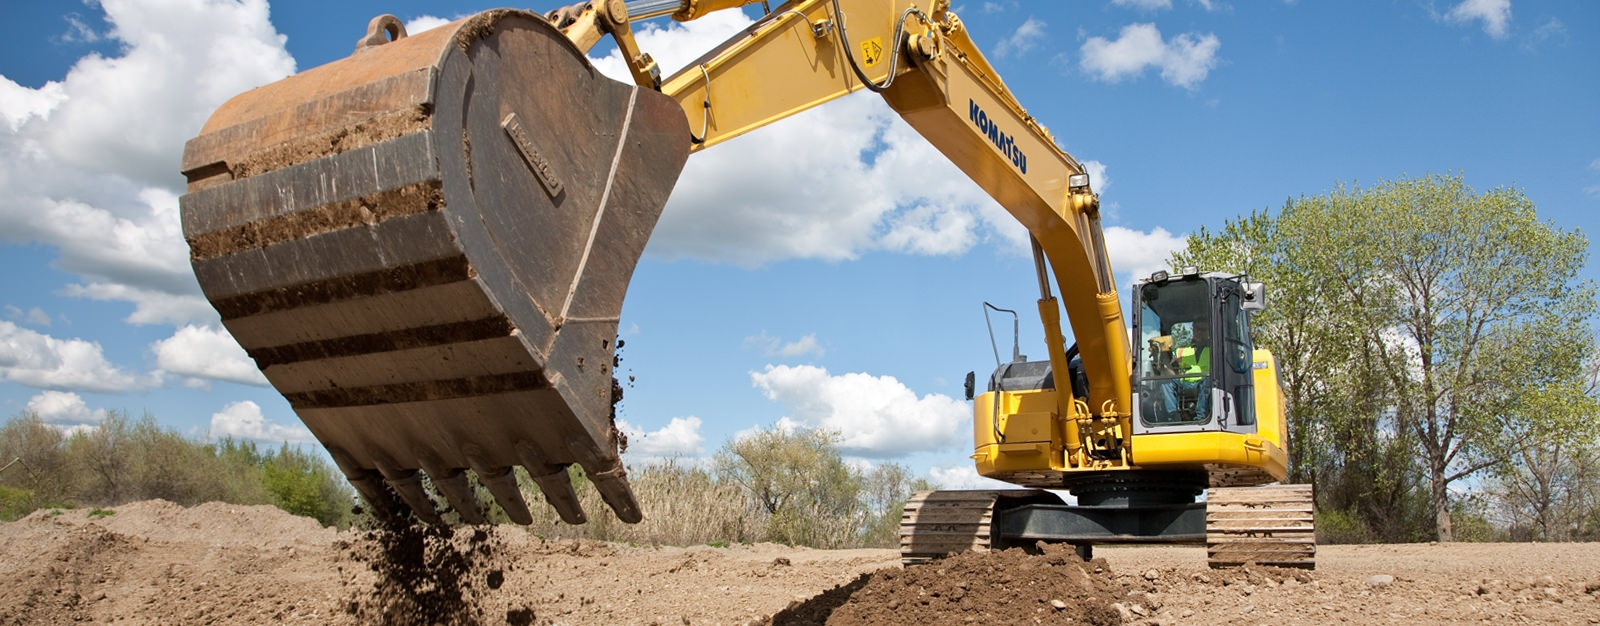 Excavation Richmond, Excavating Service Richmond, Excavating Company Richmond, Best Excavator Richmond